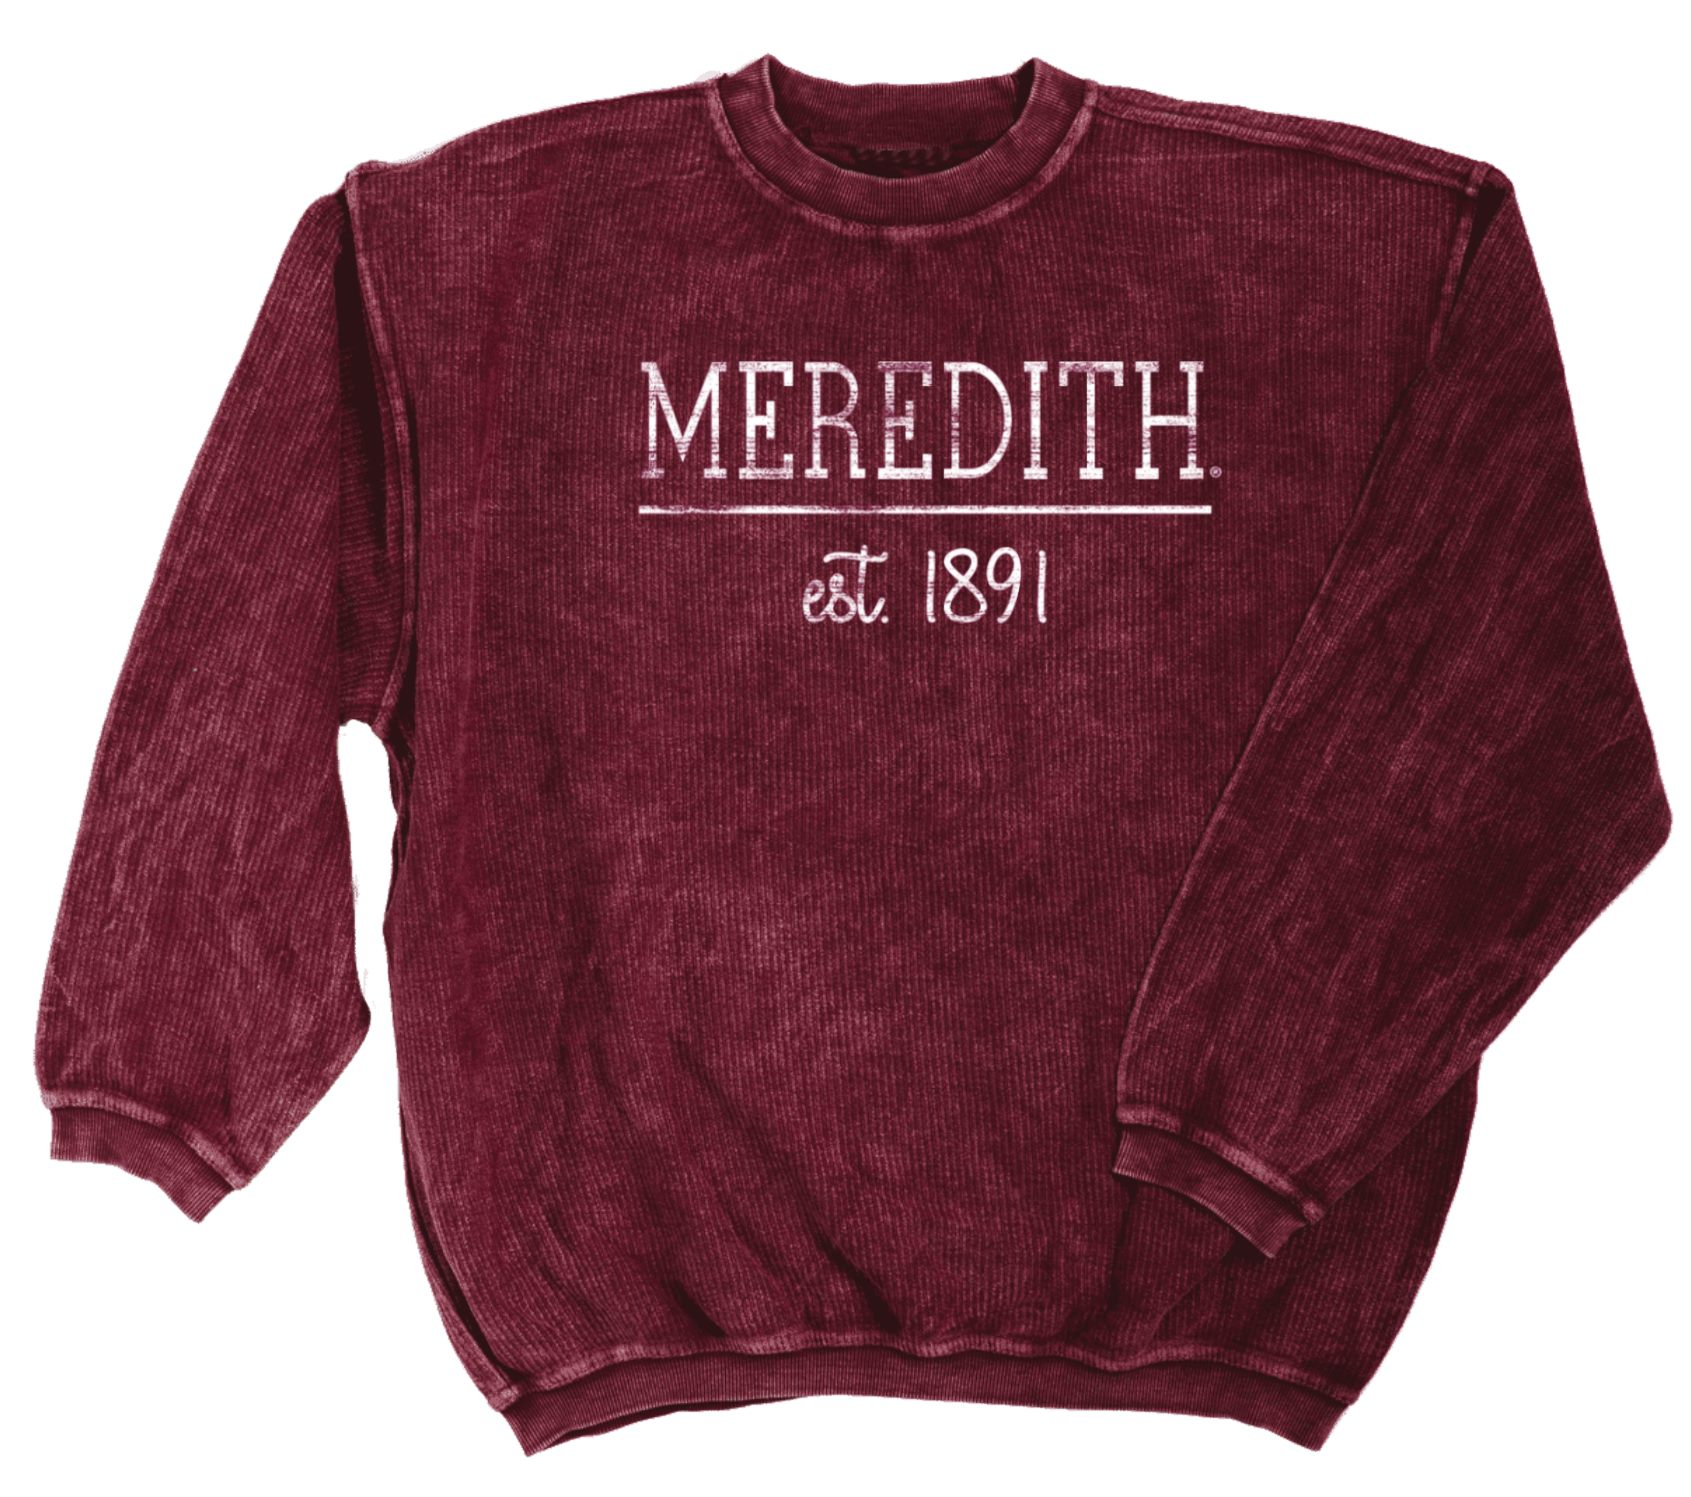 Image for the Corded Cotton Crew Sweatshirt Maroon product